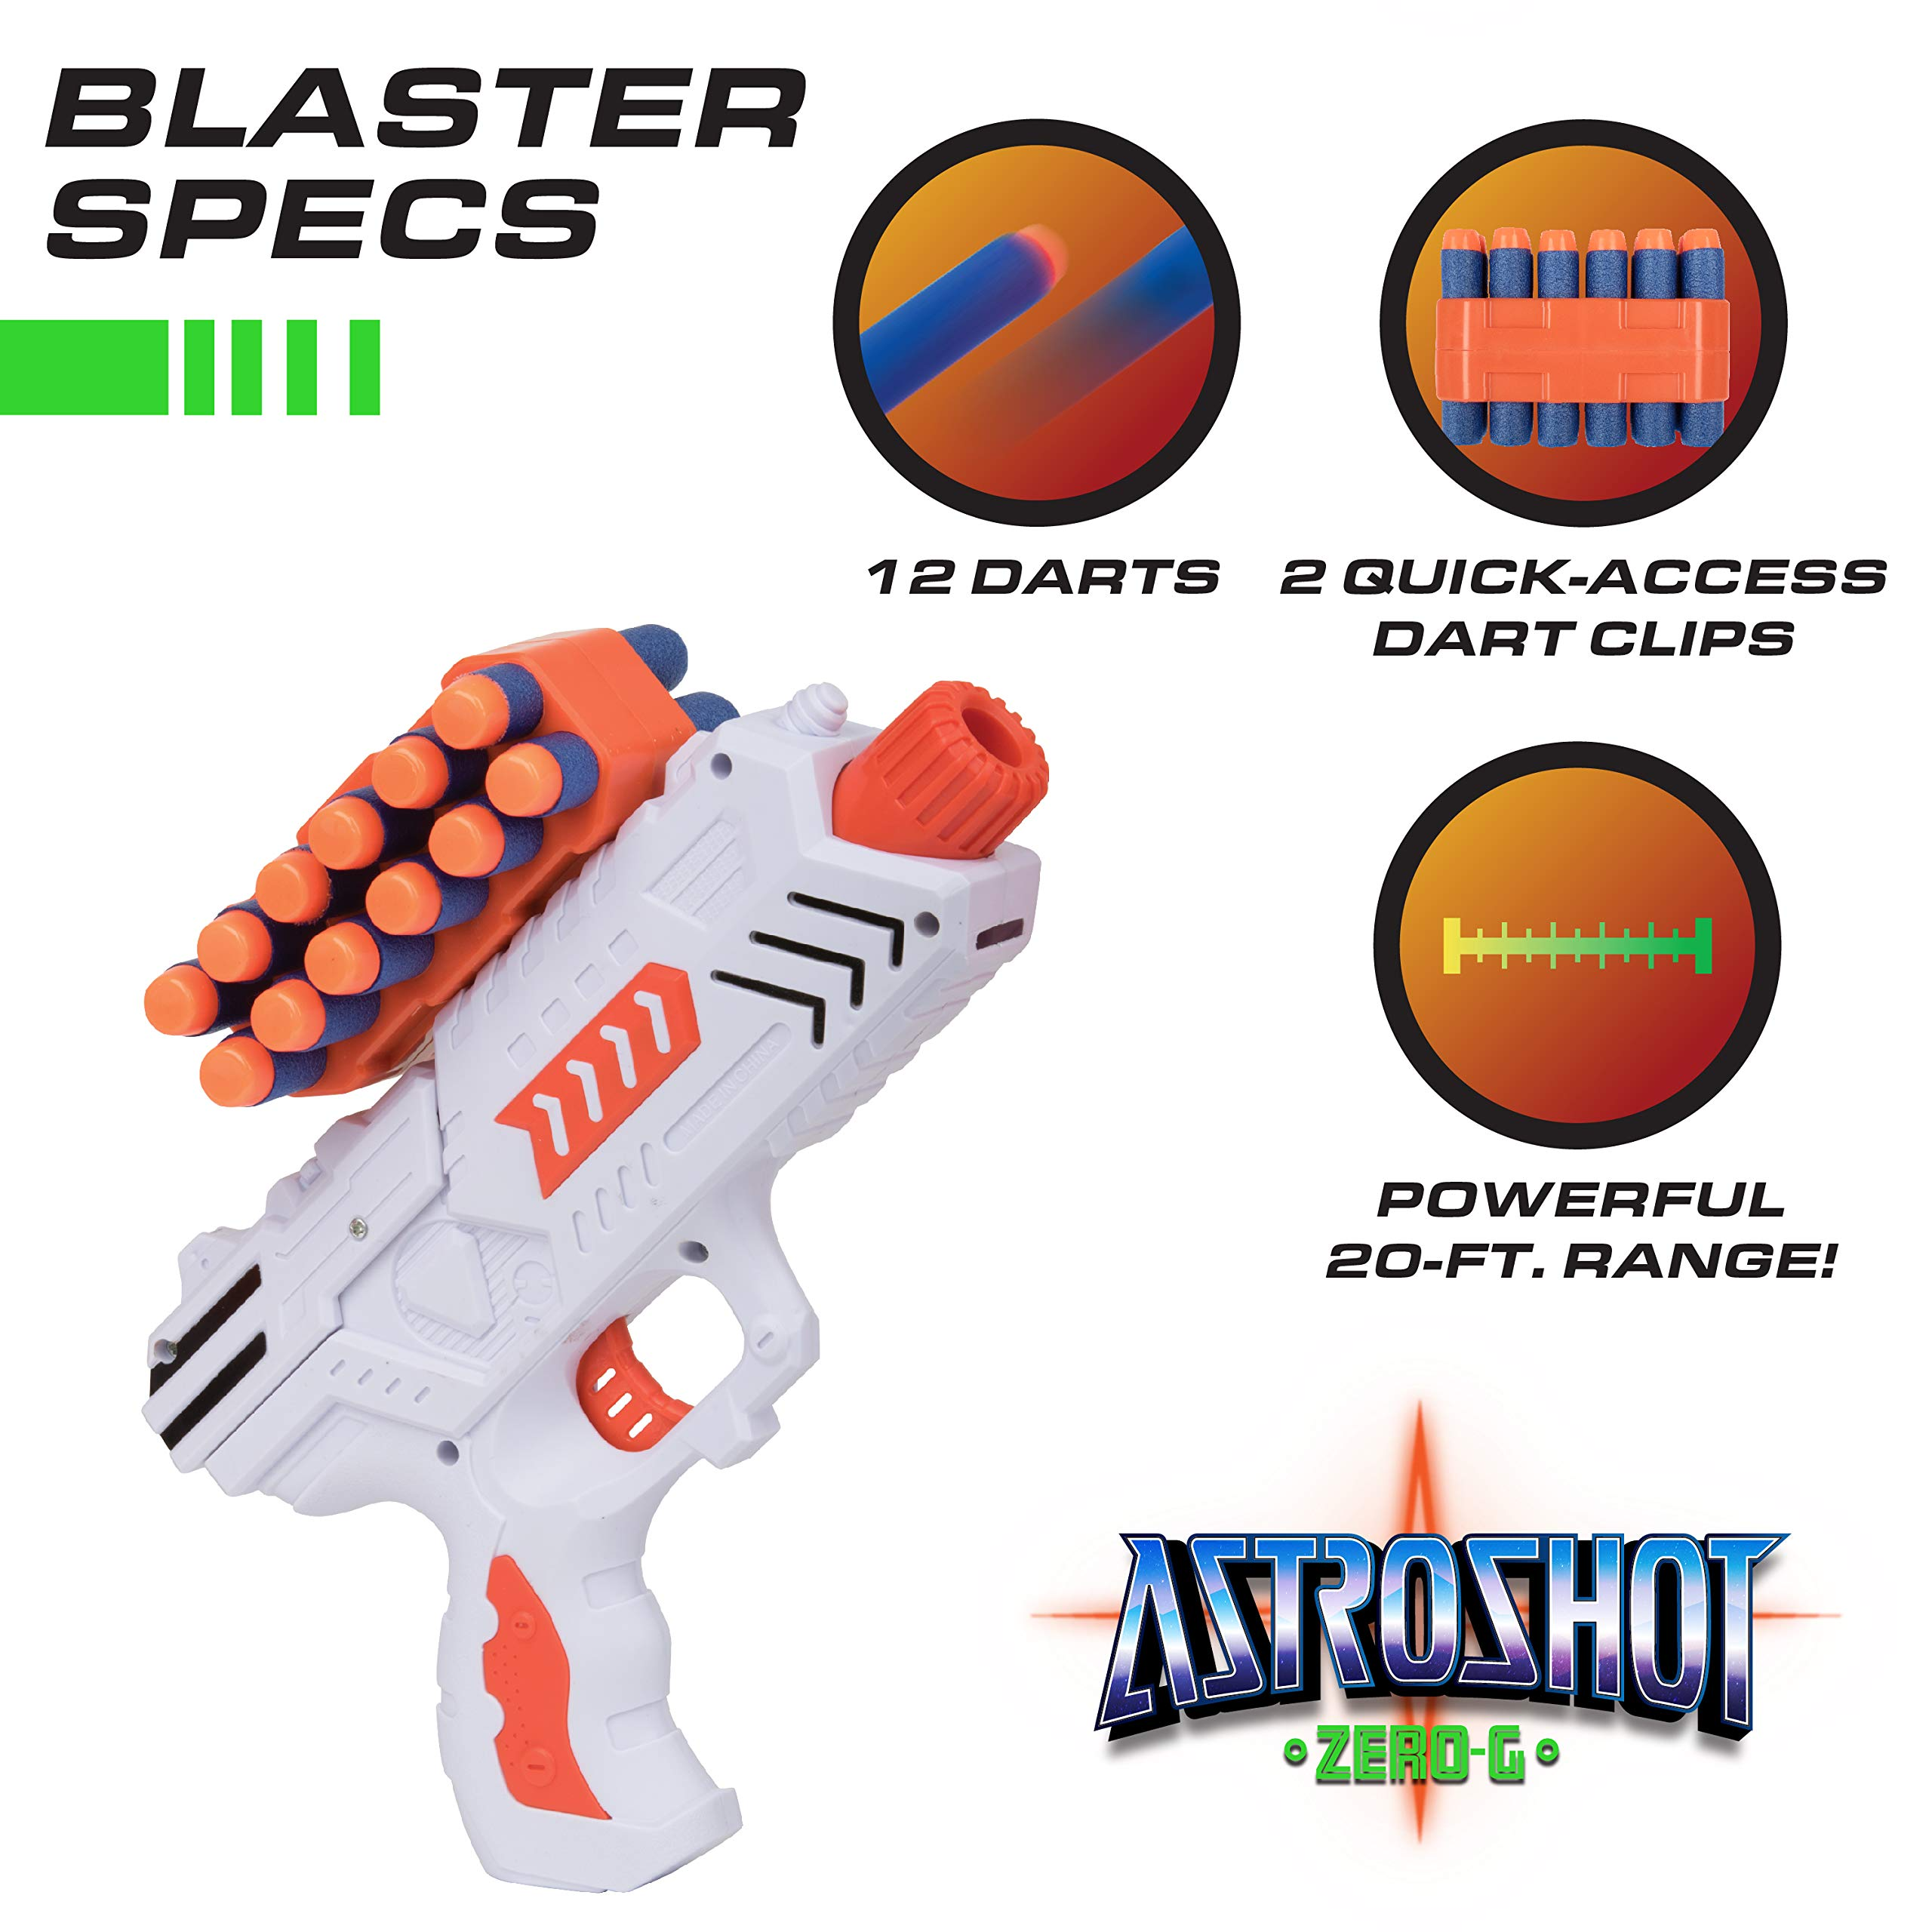 USA Toyz Compatible Nerf Targets for Shooting - AstroShot Zero G Floating Orbs Nerf Target Practice with Blaster Toy Guns for Boys or Girls and Foam Darts by USA Toyz (Image #4)